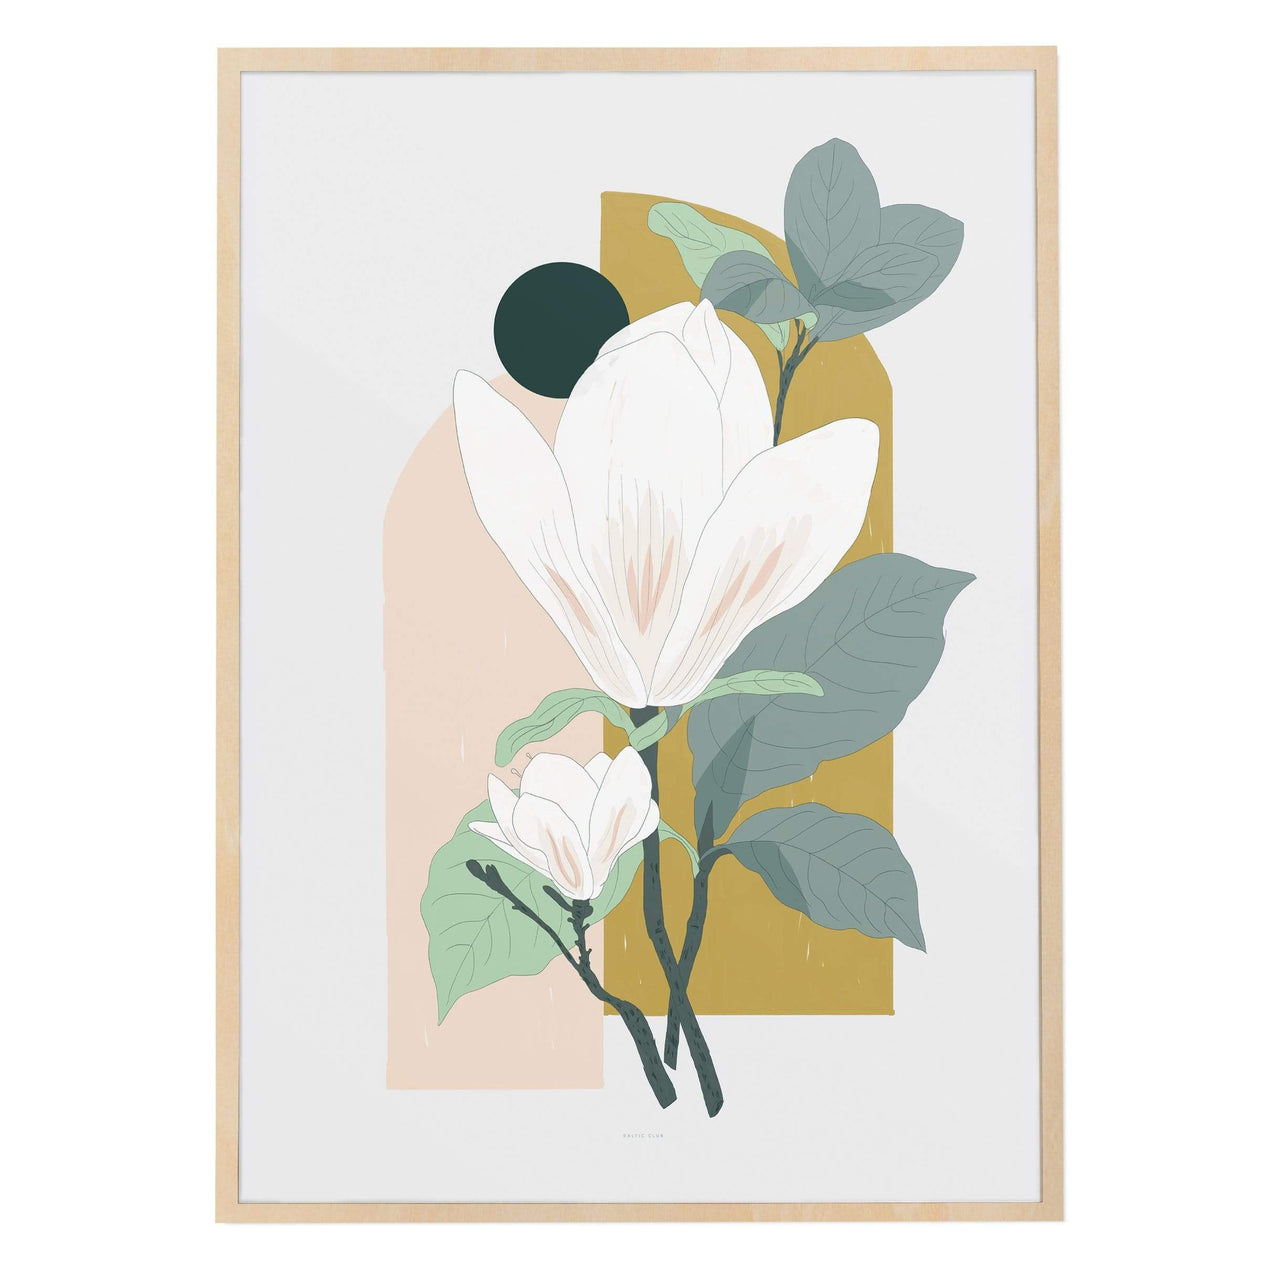 Baltic Club Art Prints Arcade (Magnolia) Art Print